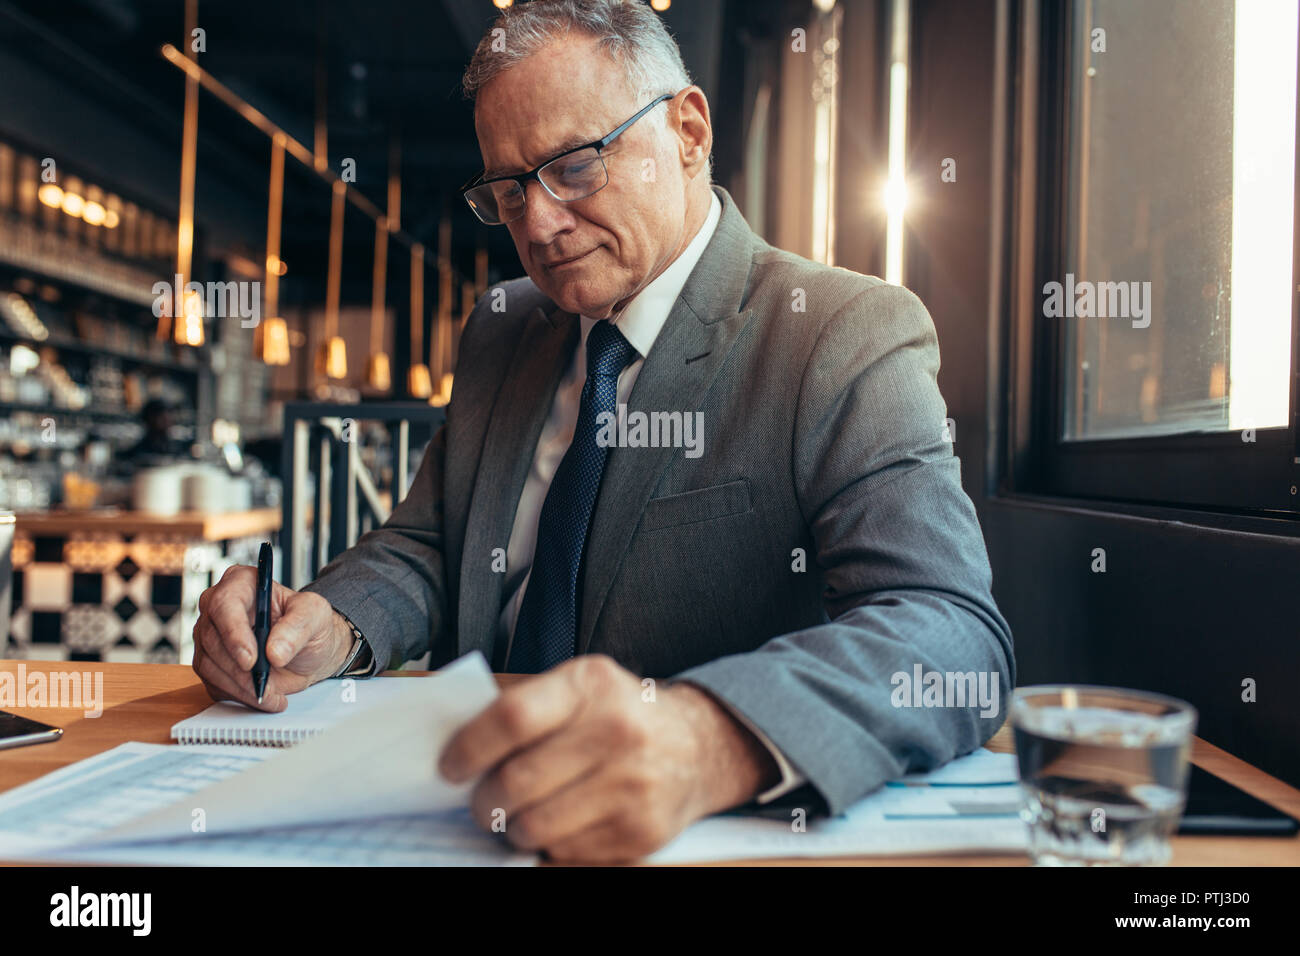 Senior businessman sitting at cafe table la lecture d'un document et de prendre des notes. Man in suit travaille sur un nouveau projet de budget. Photo Stock